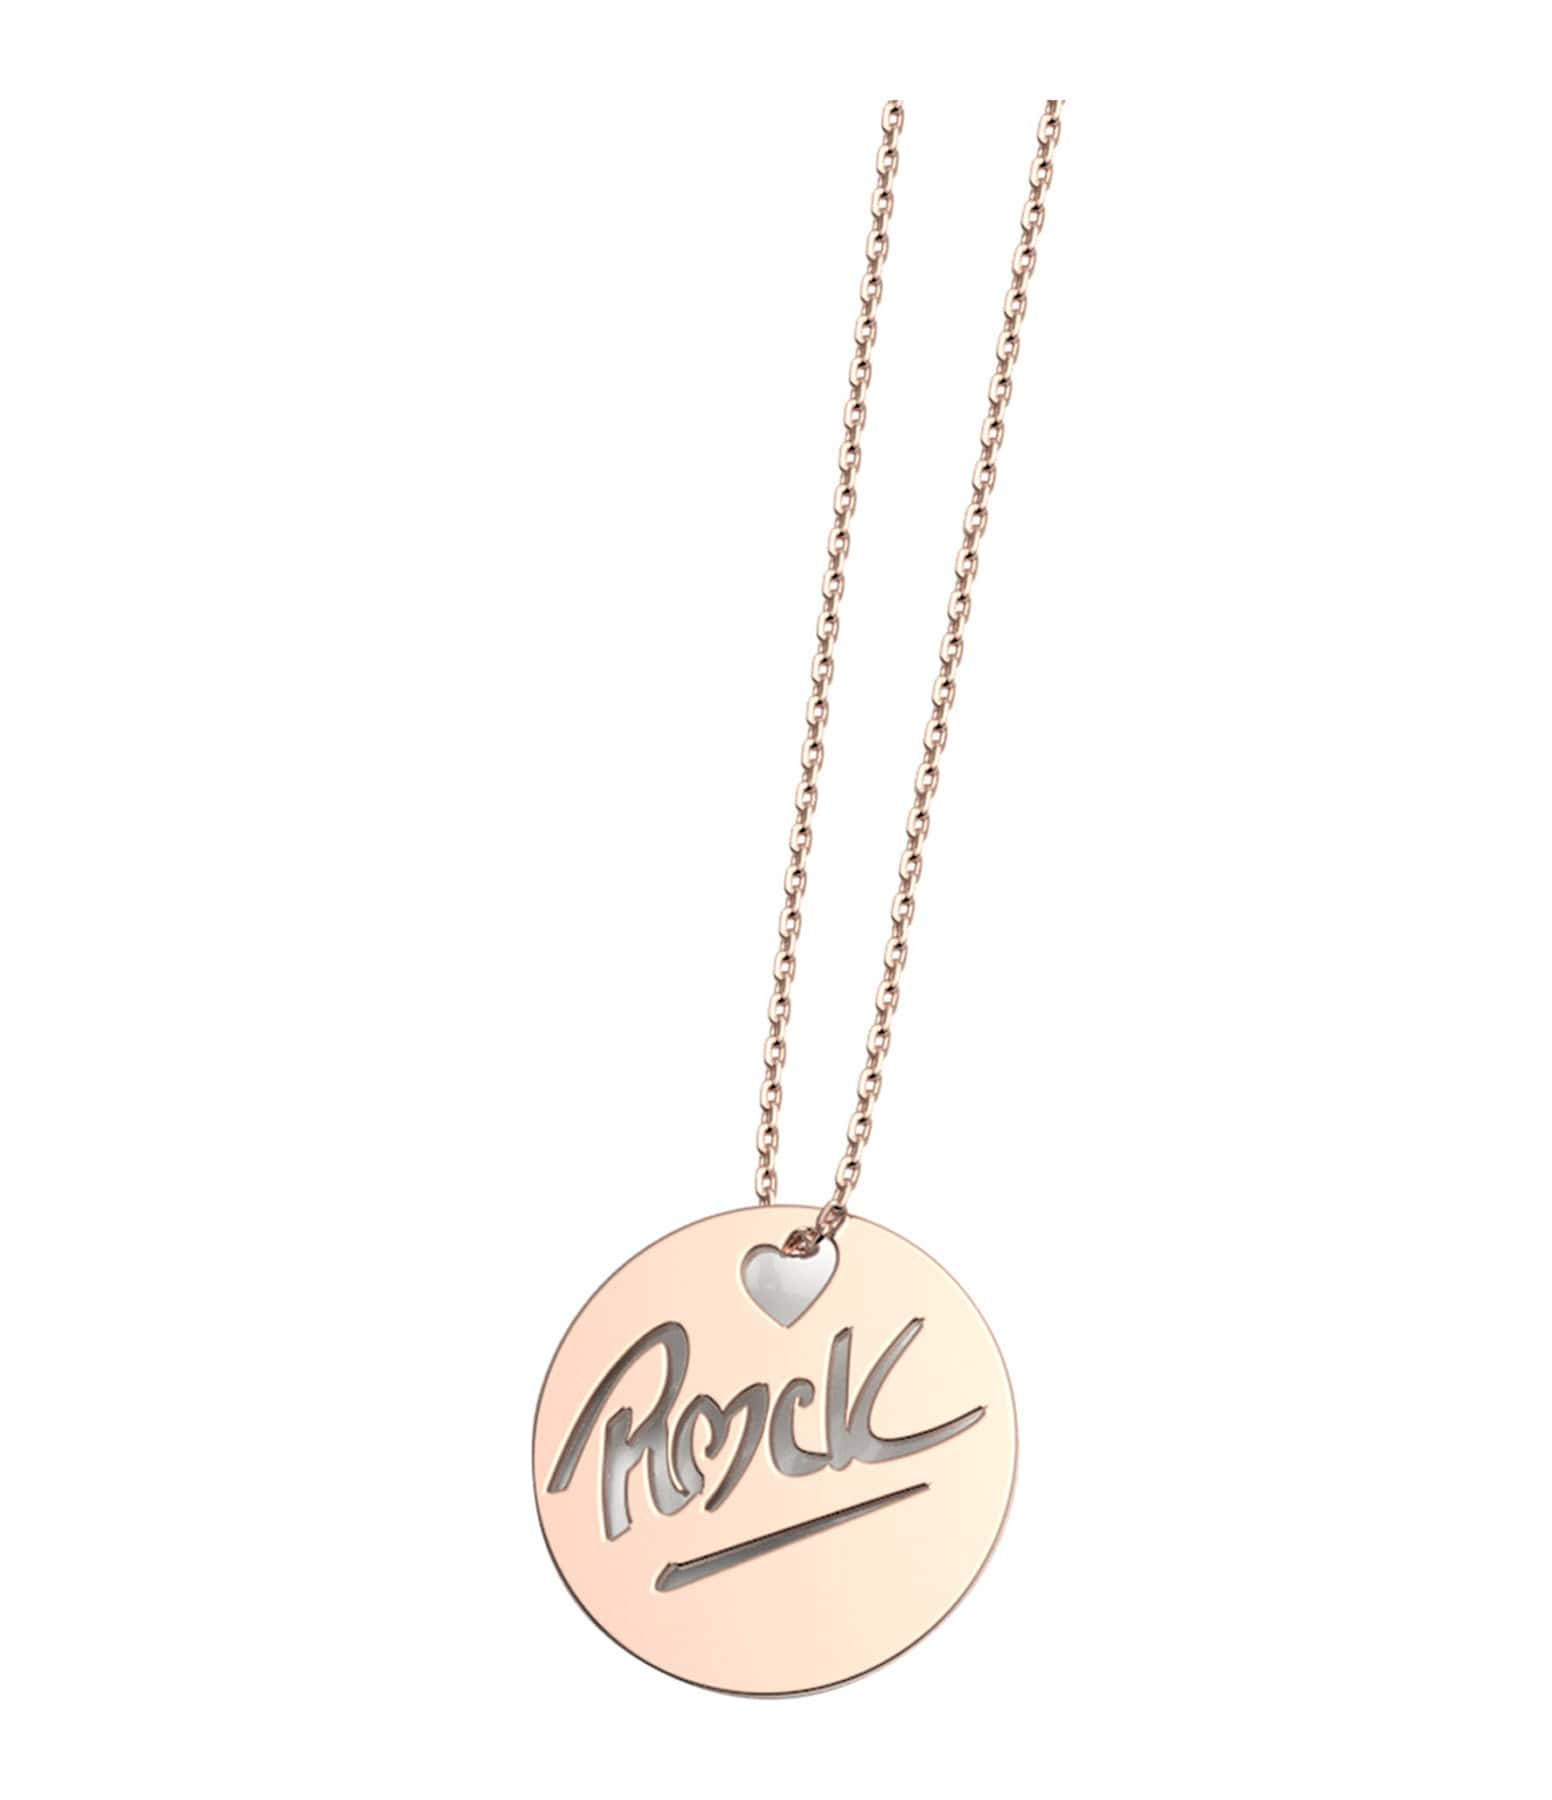 NAVA JOAILLERIE - Collier Rond Rock L Or Rose